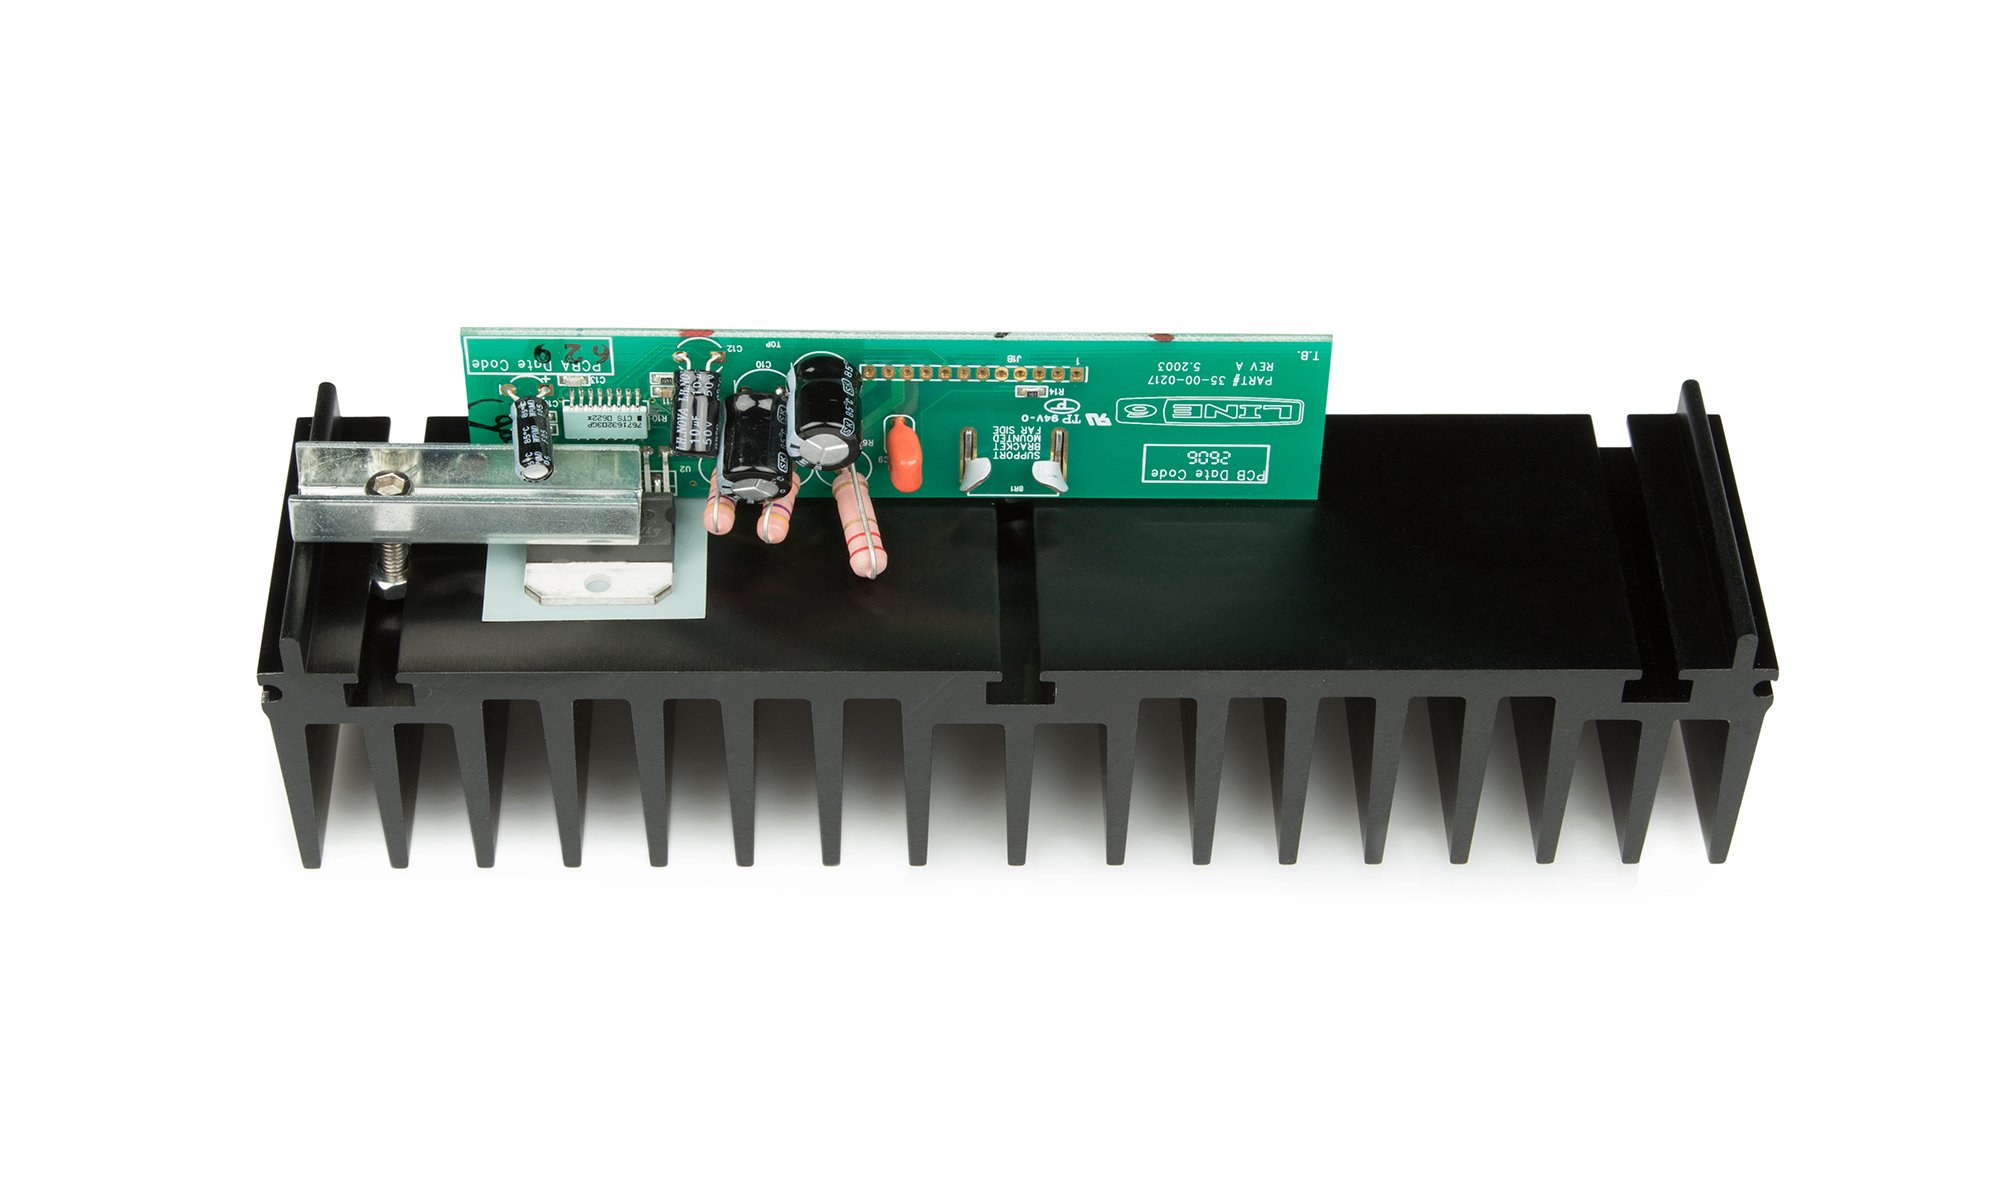 Line 6 50-02-0217-1 Amp with Heatsink PCB Assembly for Spider III 112 50-02-0217-1